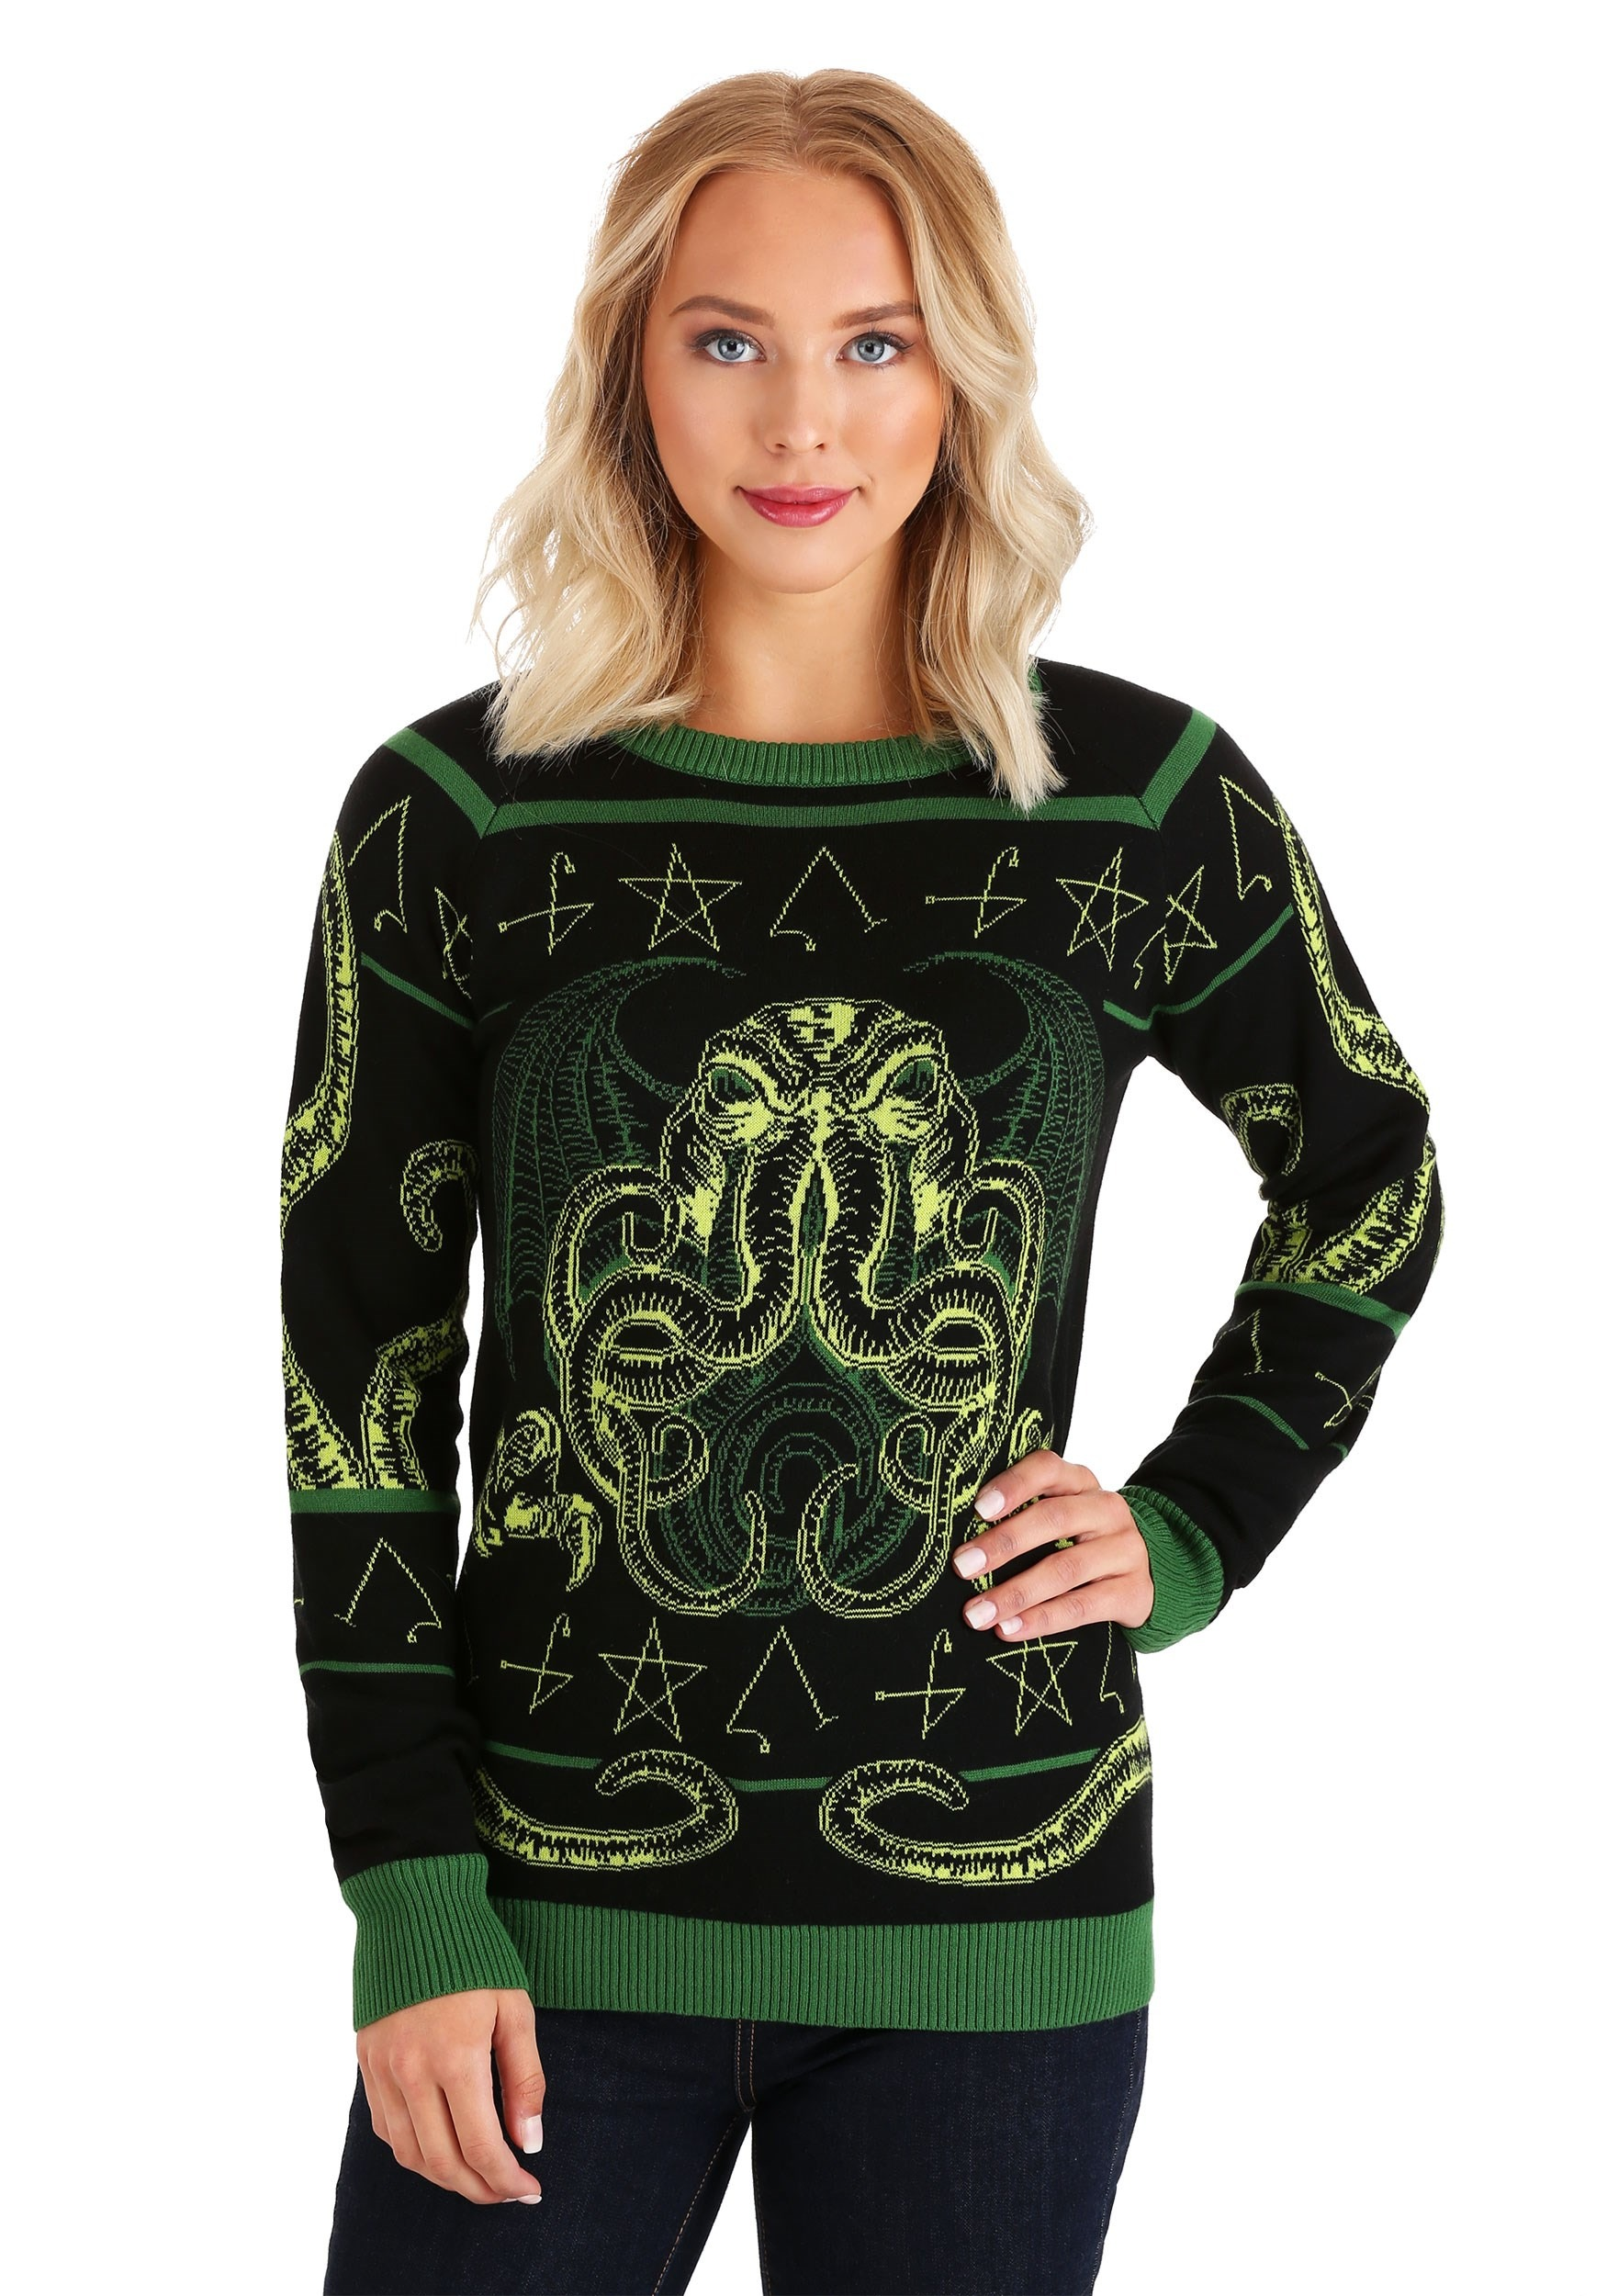 Rage of Cthulhu Adult Ugly Halloween Sweater for Adults